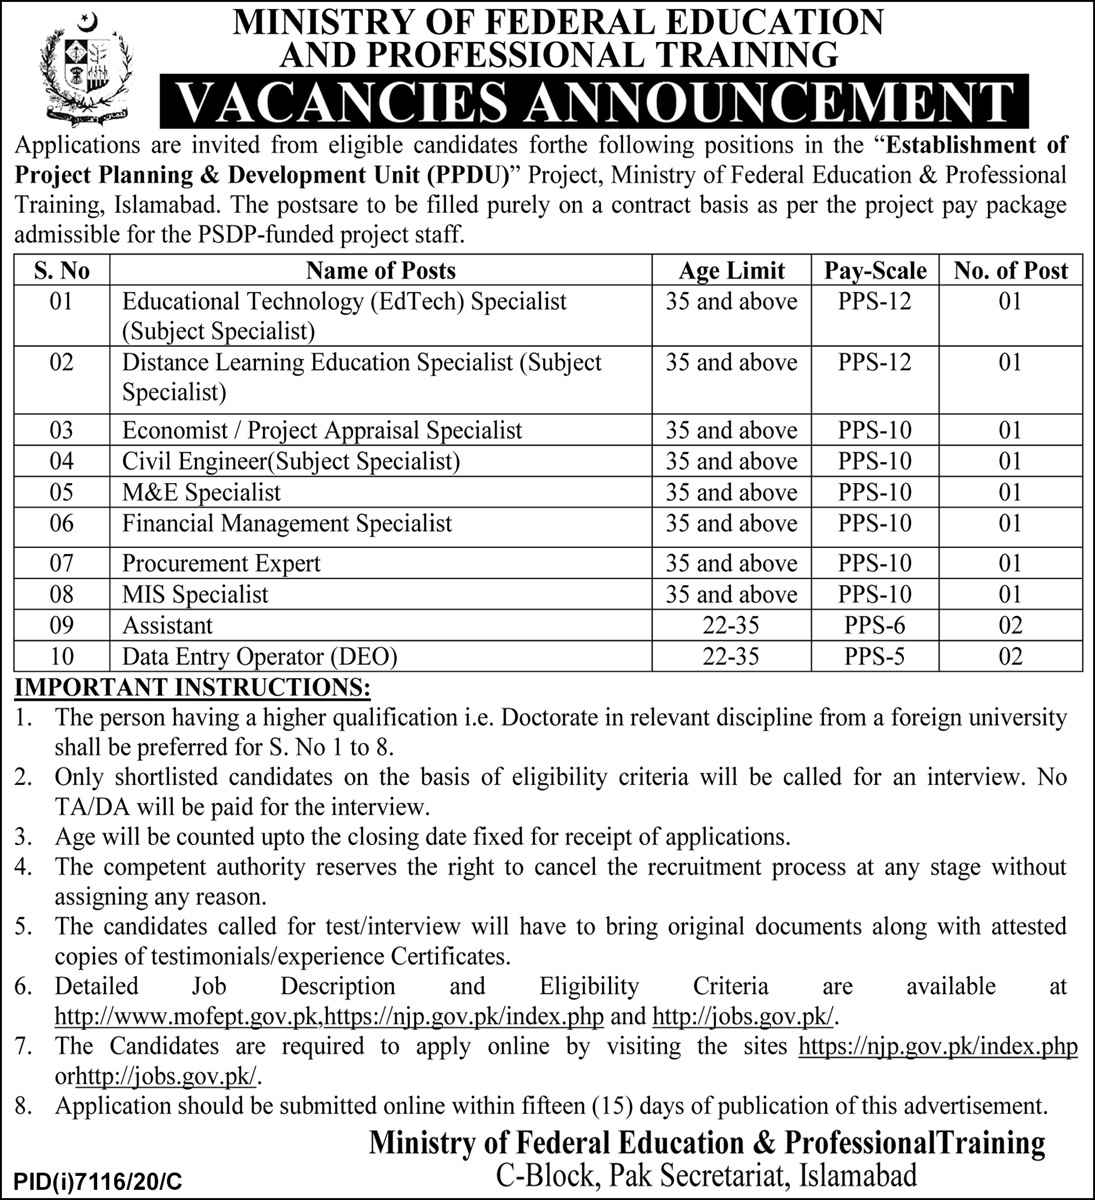 Ministry of Federal Education & Professional Training MOENT Jobs 2021 For Educational Technology Specialist, Distance Learning Education Specialist, Economist, Project Appraisal Specialist, Civil Engineer, M&E Specialist, And more